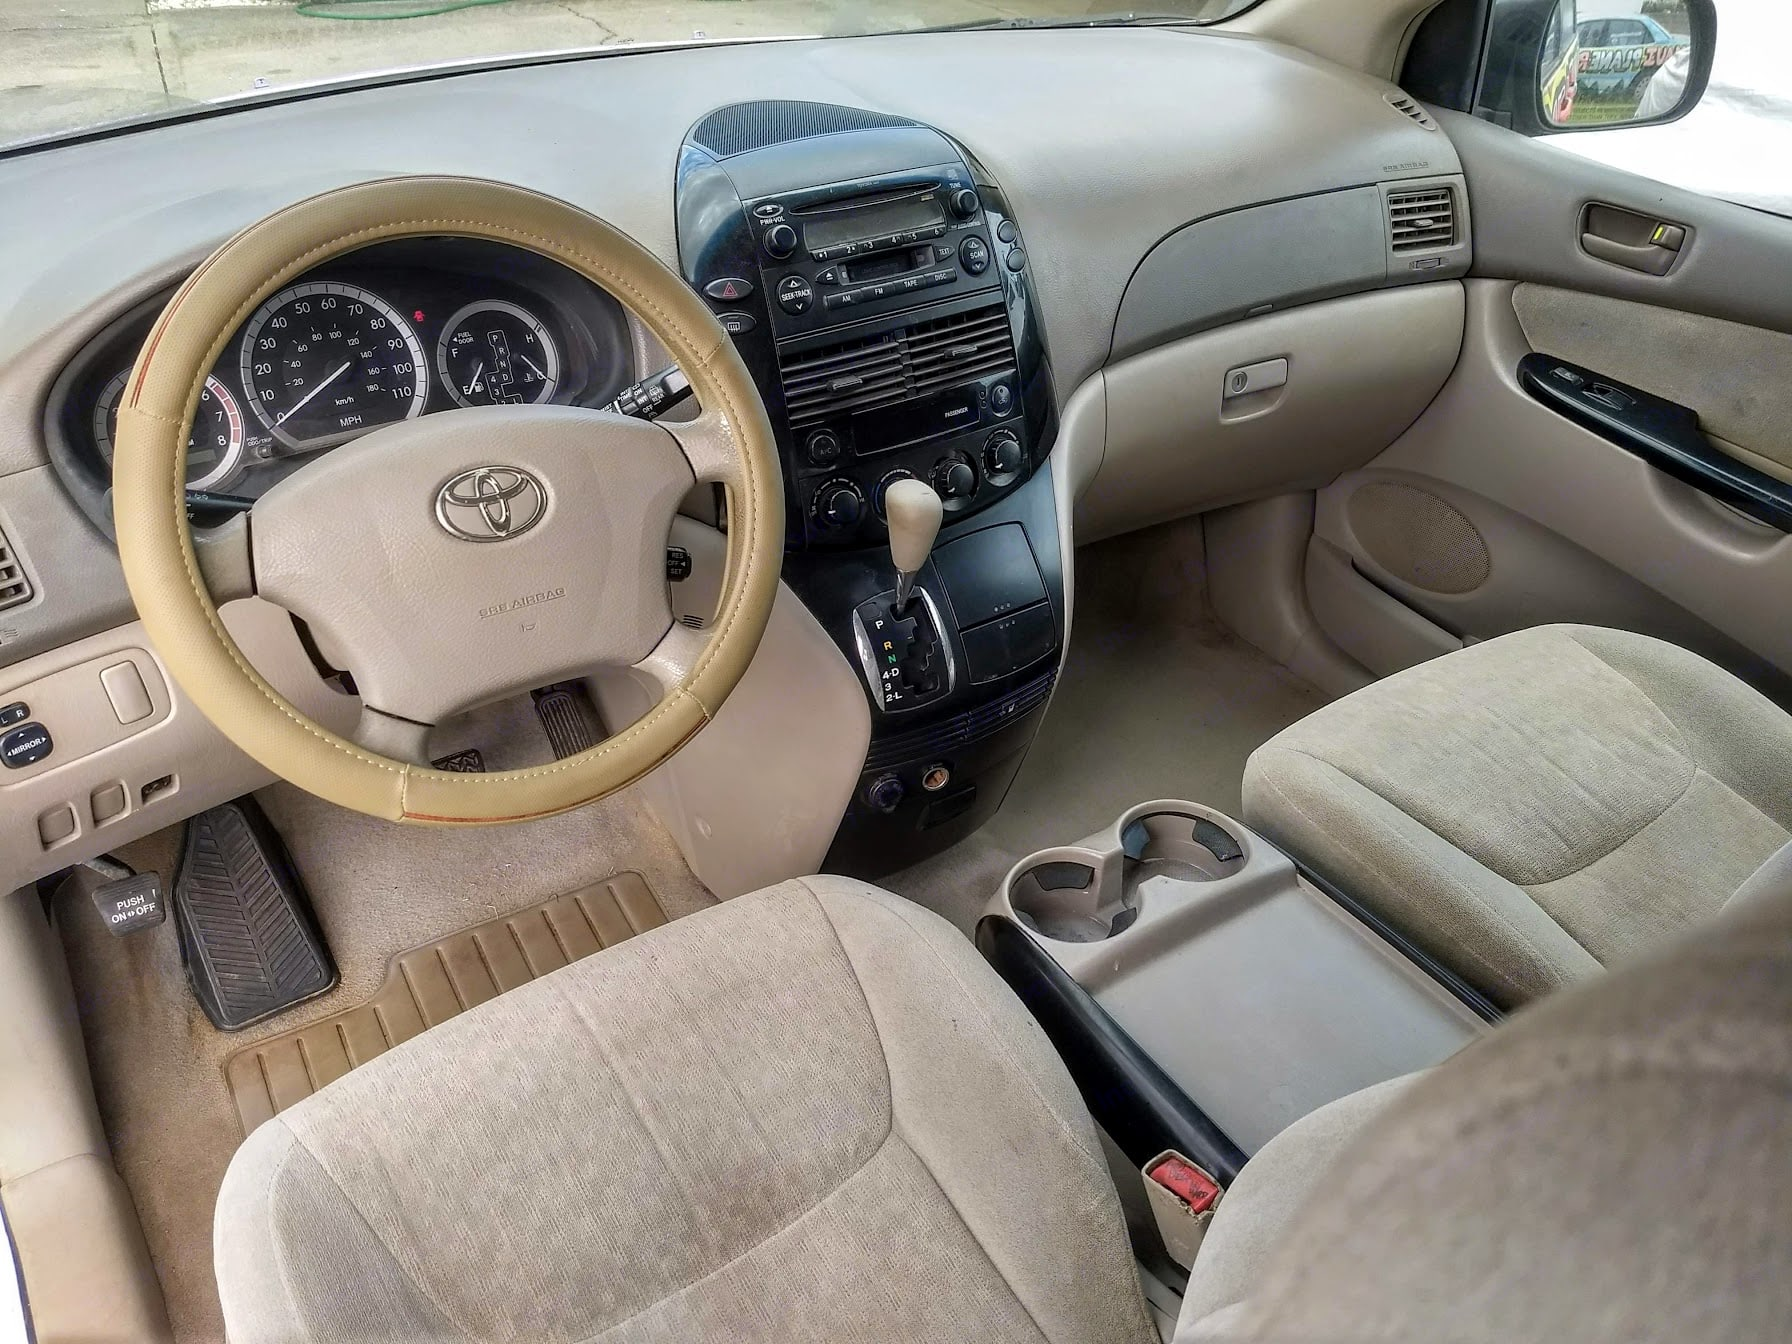 The Drivers cockpit features a next-gen wheel cover, providing a rich supple feedback loop; soft and comfortable, yet fully controllable.  All driver operations and systems are intuitively laid out.  Instrumentation is robust; Experience the pure joy of the drive!. ToyotAloha Sienna Special 2004